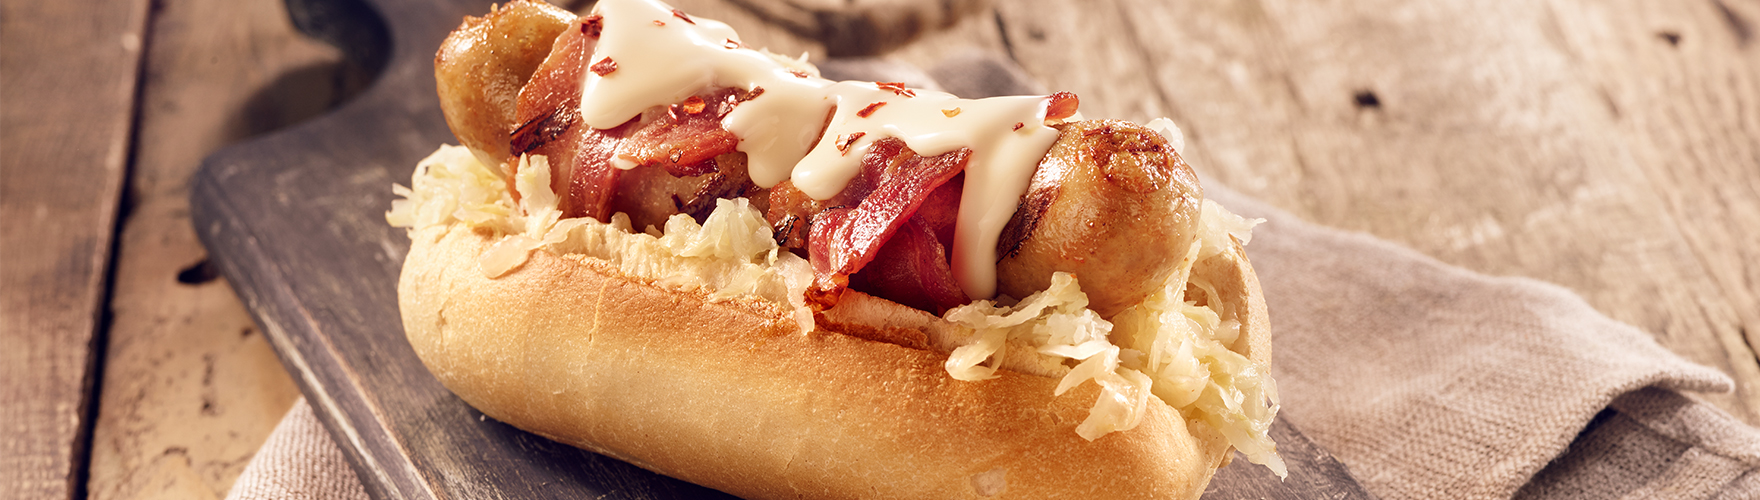 Hot dog with sauerkraut and bacon